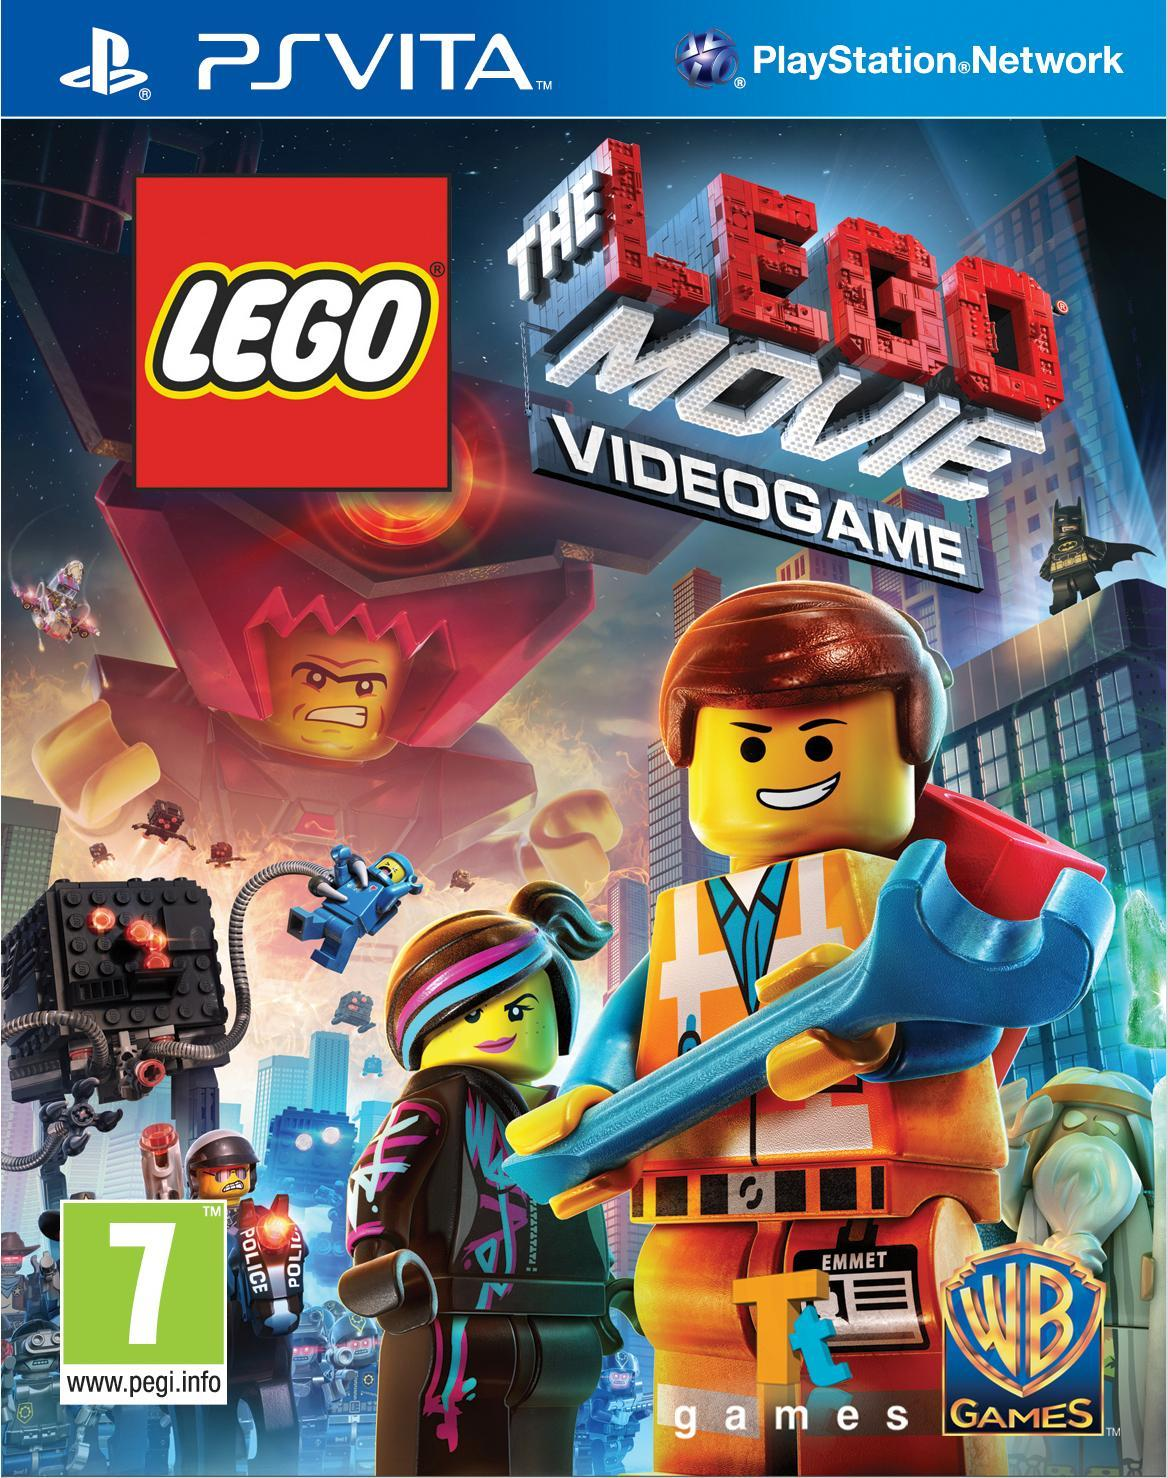 Warner Bros LEGO Movie PS Vita (1000452191) thumbnail